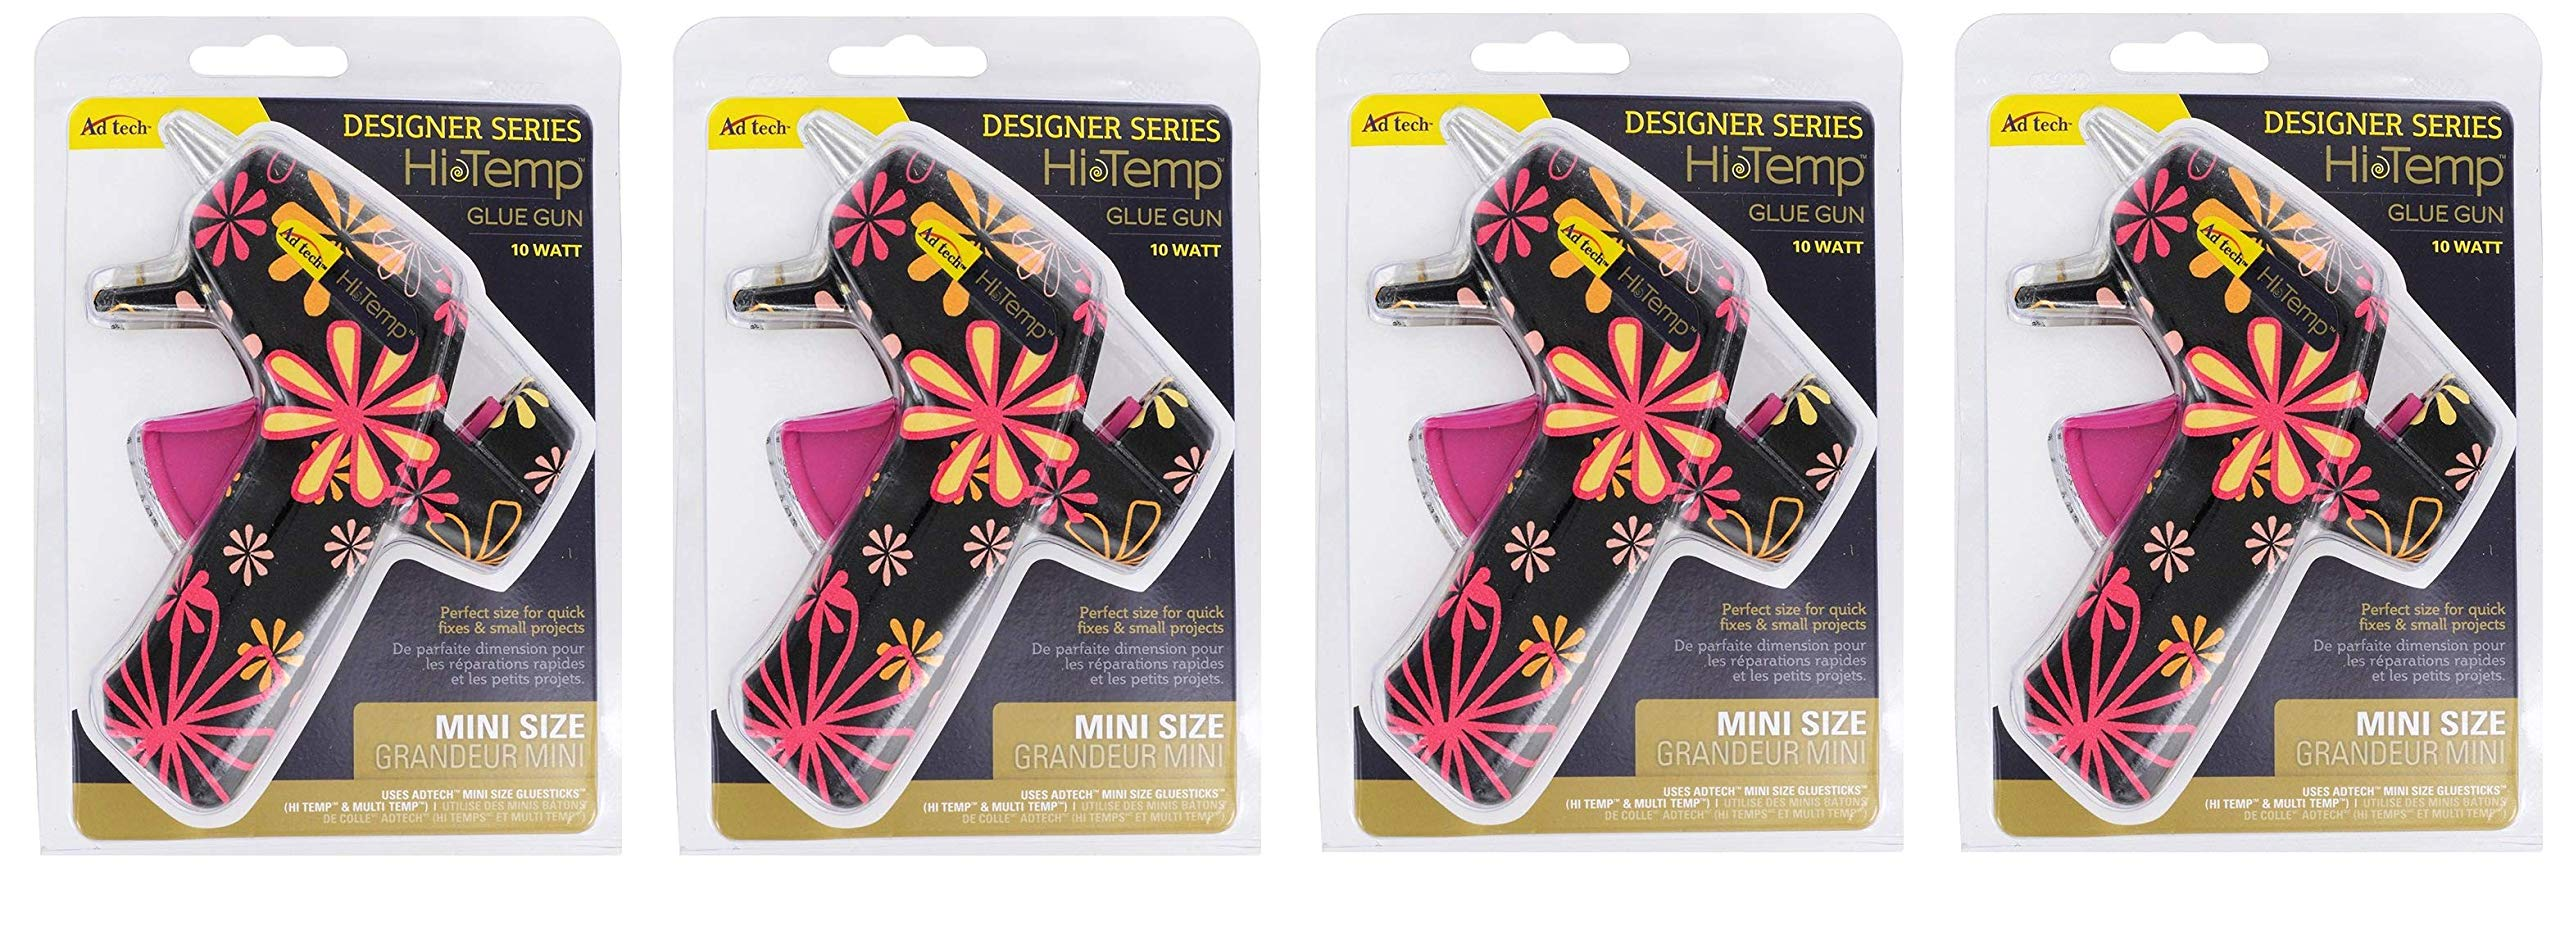 AdTech High Temp Mini Hot Glue Gun in Black Daisy | Arts and Crafts and DIY | Fun and Cute Tool | Item #0502 (Fоur Paсk)